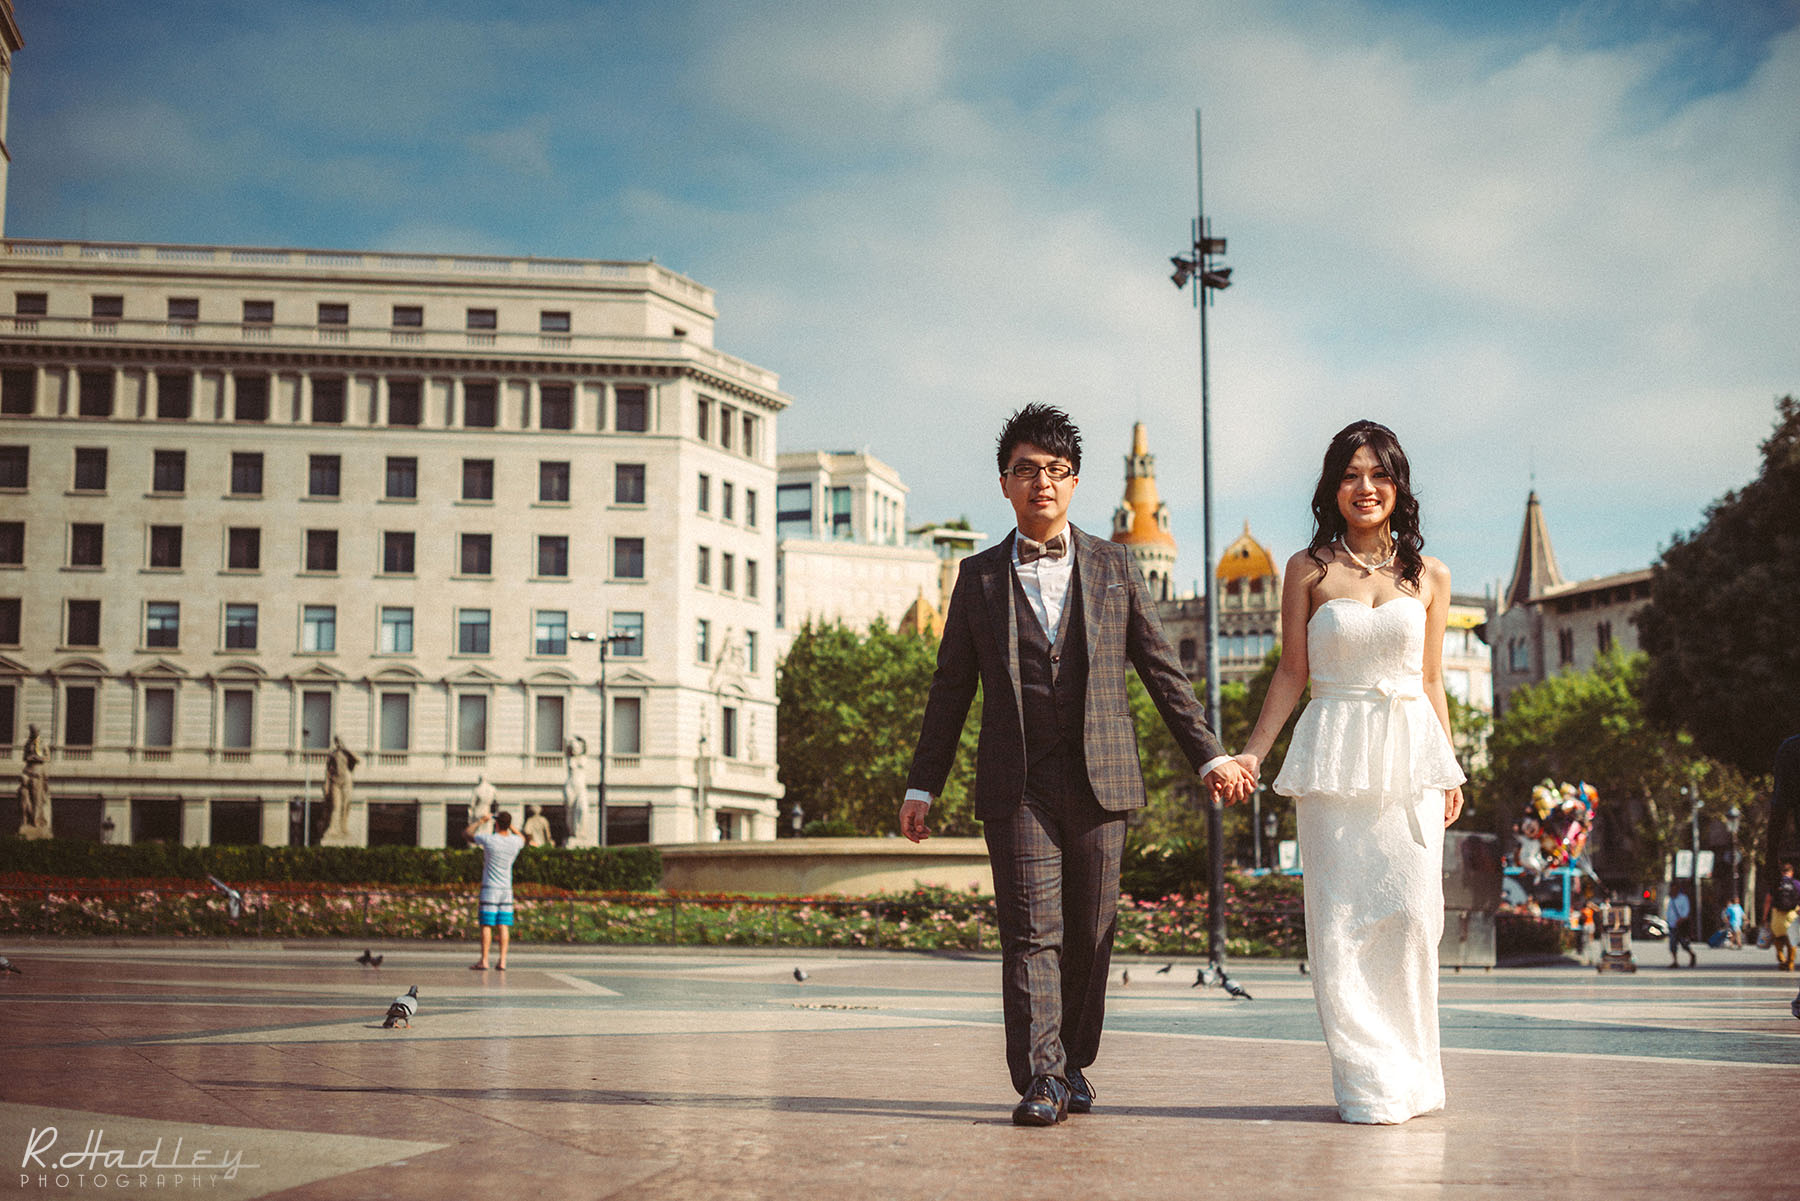 Wedding portrait photo session in Barcelona